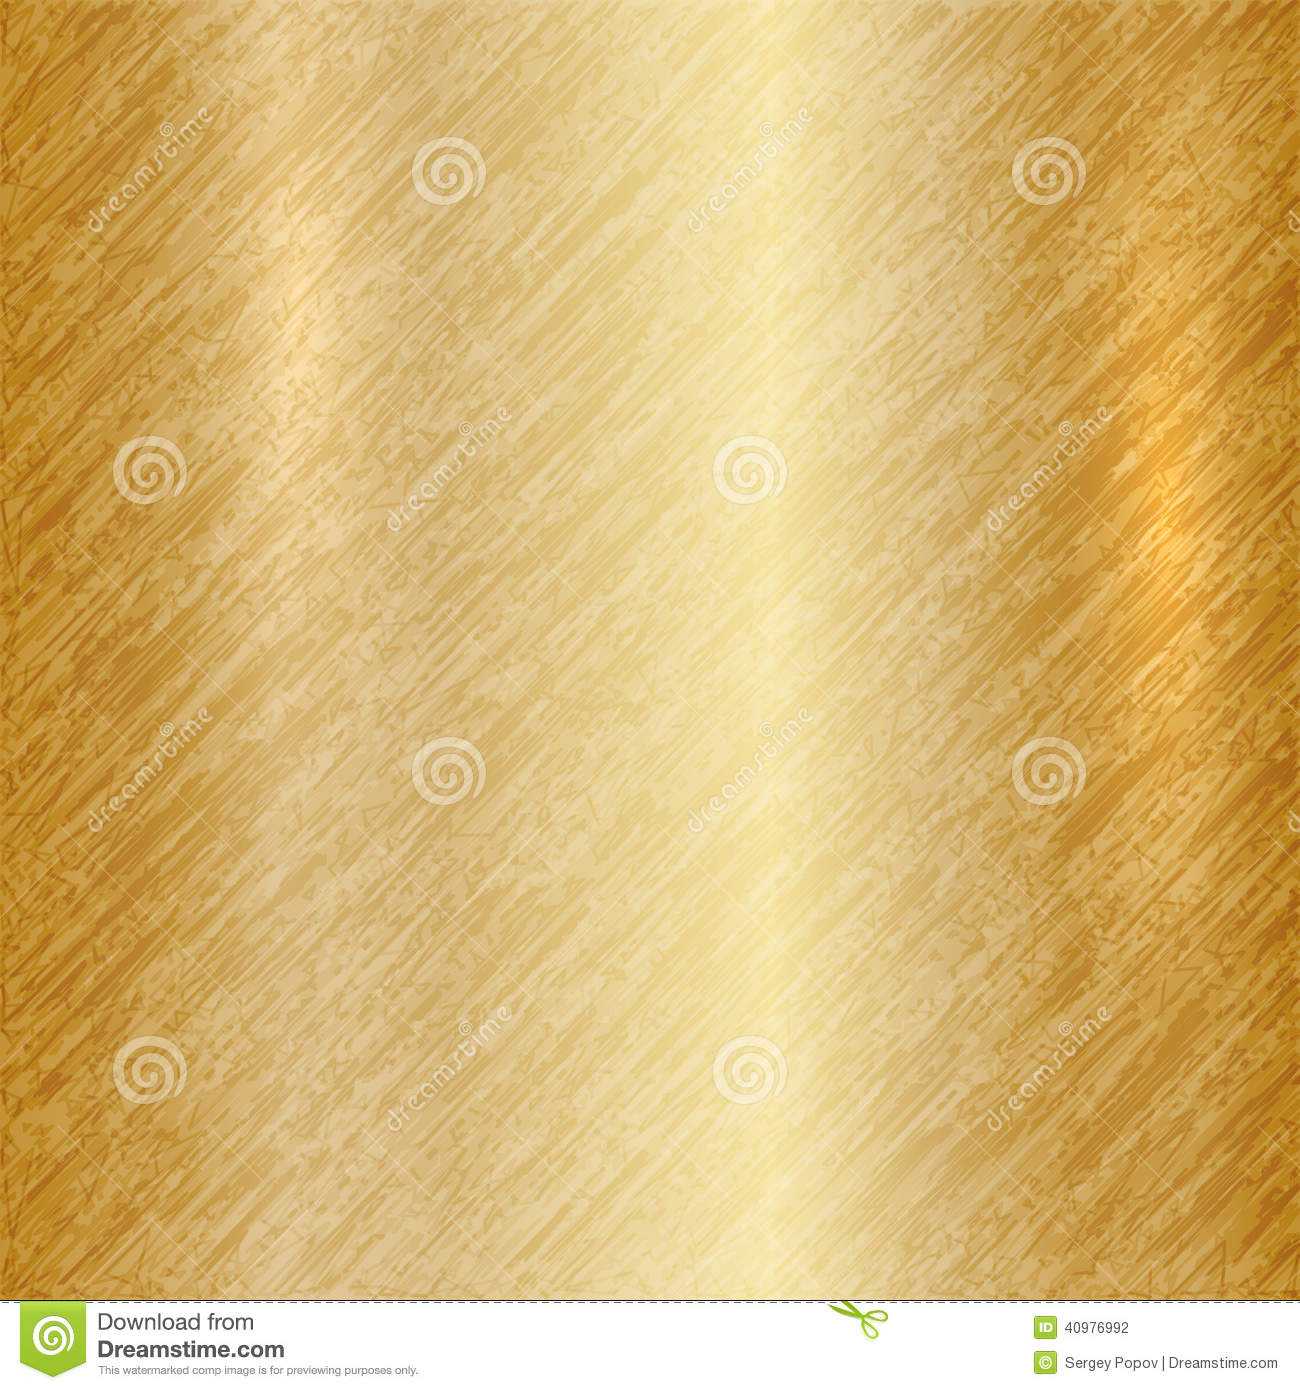 Anime Girls Night Sky besides Carbon fiber background Wallpapers furthermore Pattern For Background additionally Animated also Cool Educational Links For Eighth Grade Students. on green futuristic pattern cells background